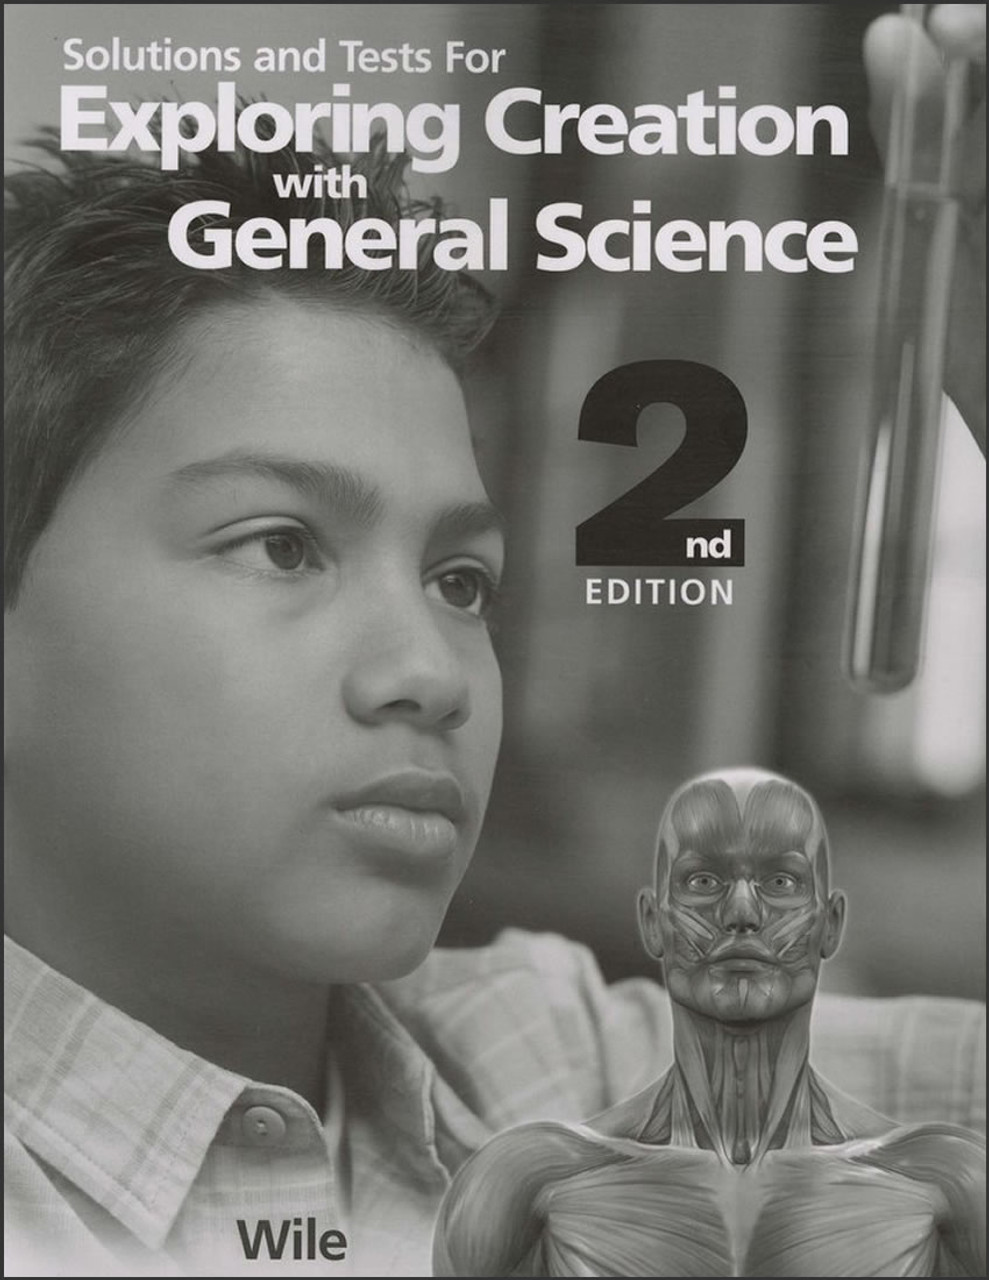 Exploring Creation with General Science, 2nd edition - Solutions & Tests